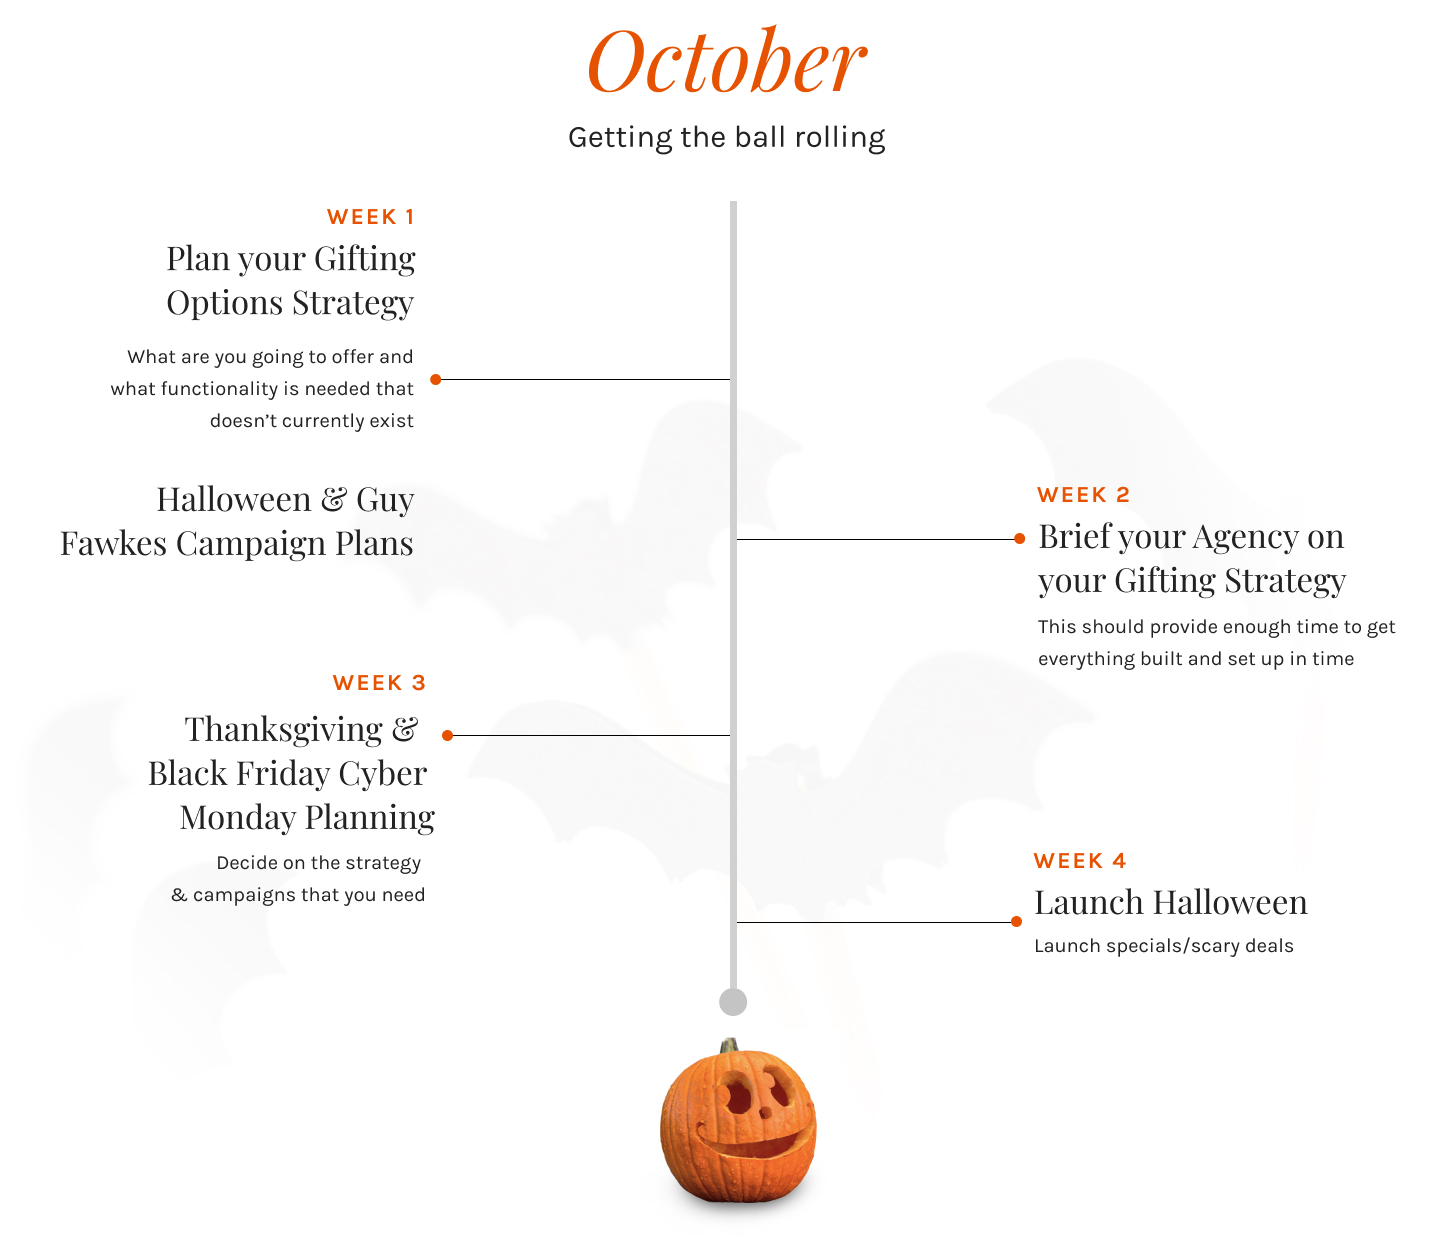 October Getting the ball rolling